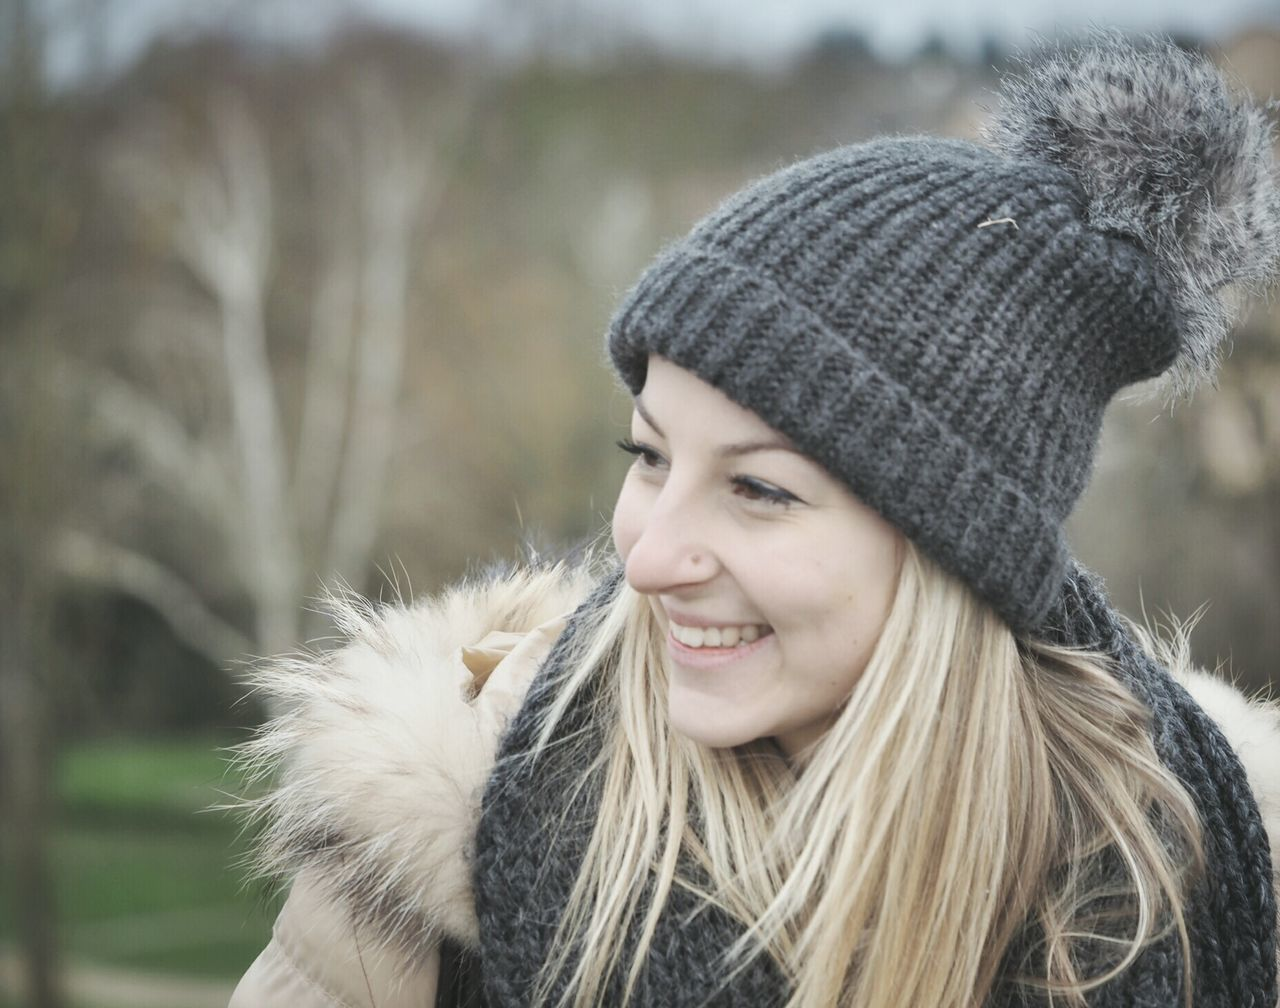 knit hat, warm clothing, real people, one person, focus on foreground, outdoors, day, winter, headshot, young women, leisure activity, young adult, smiling, front view, long hair, close-up, lifestyles, cold temperature, happiness, nature, beautiful woman, blond hair, people